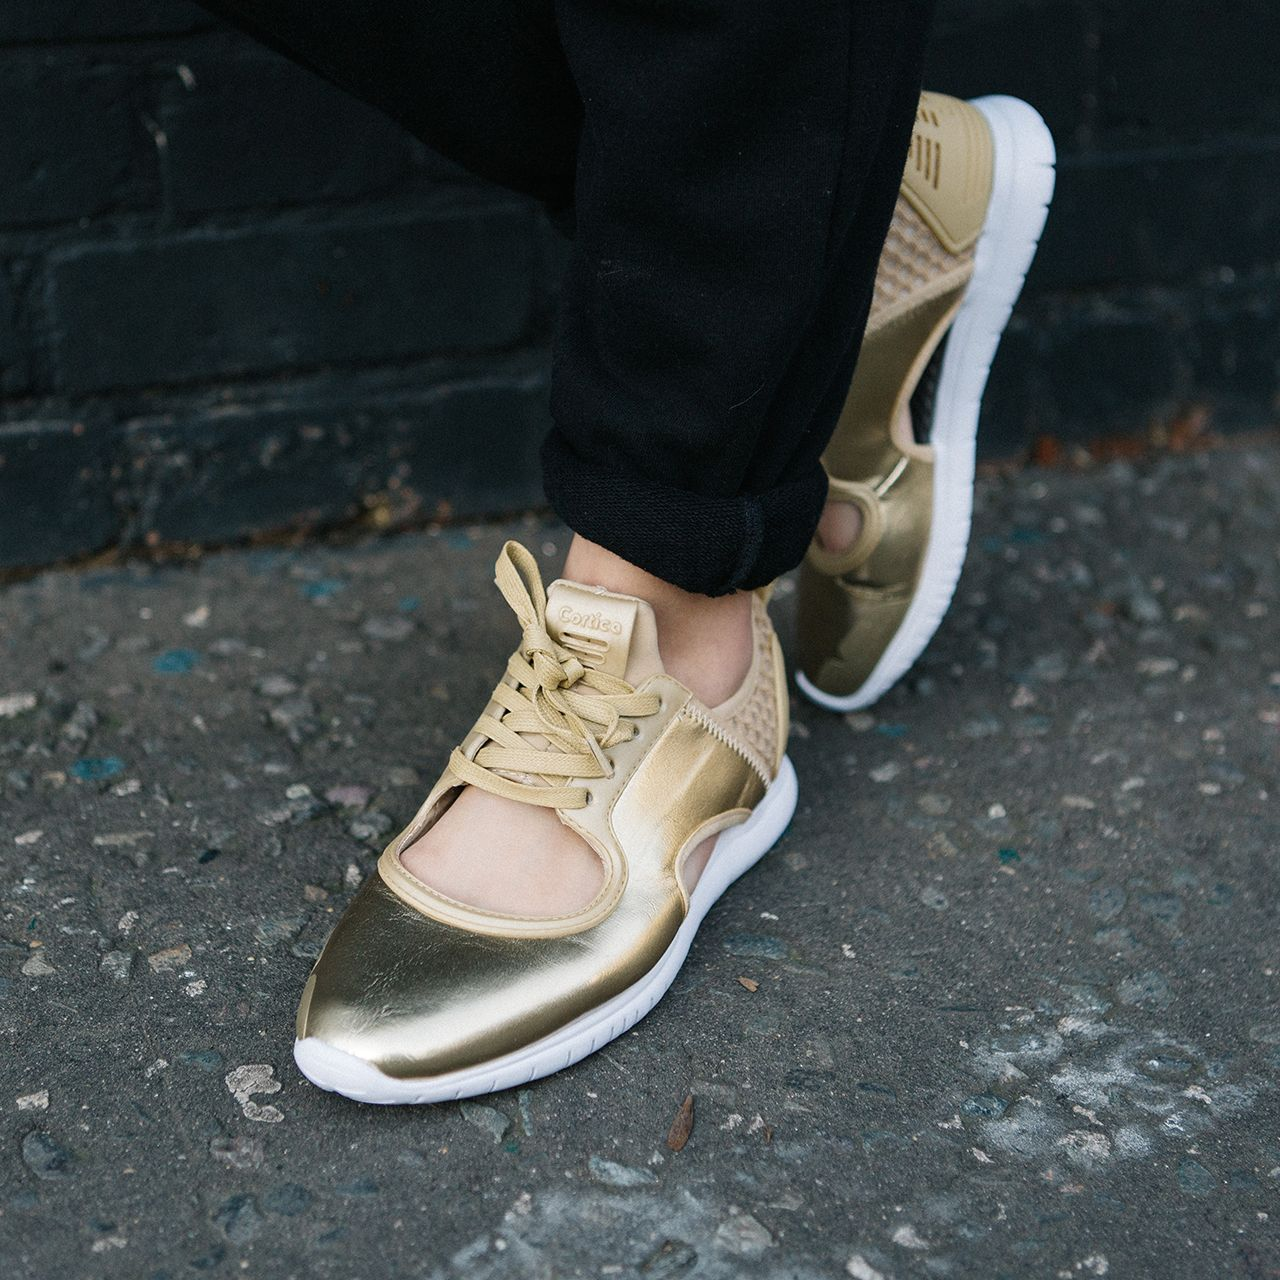 d80b423cd68 The Women s Cortica Epic Runner Trainer in Gold Foil. More styles  available. Sneaker Outfits